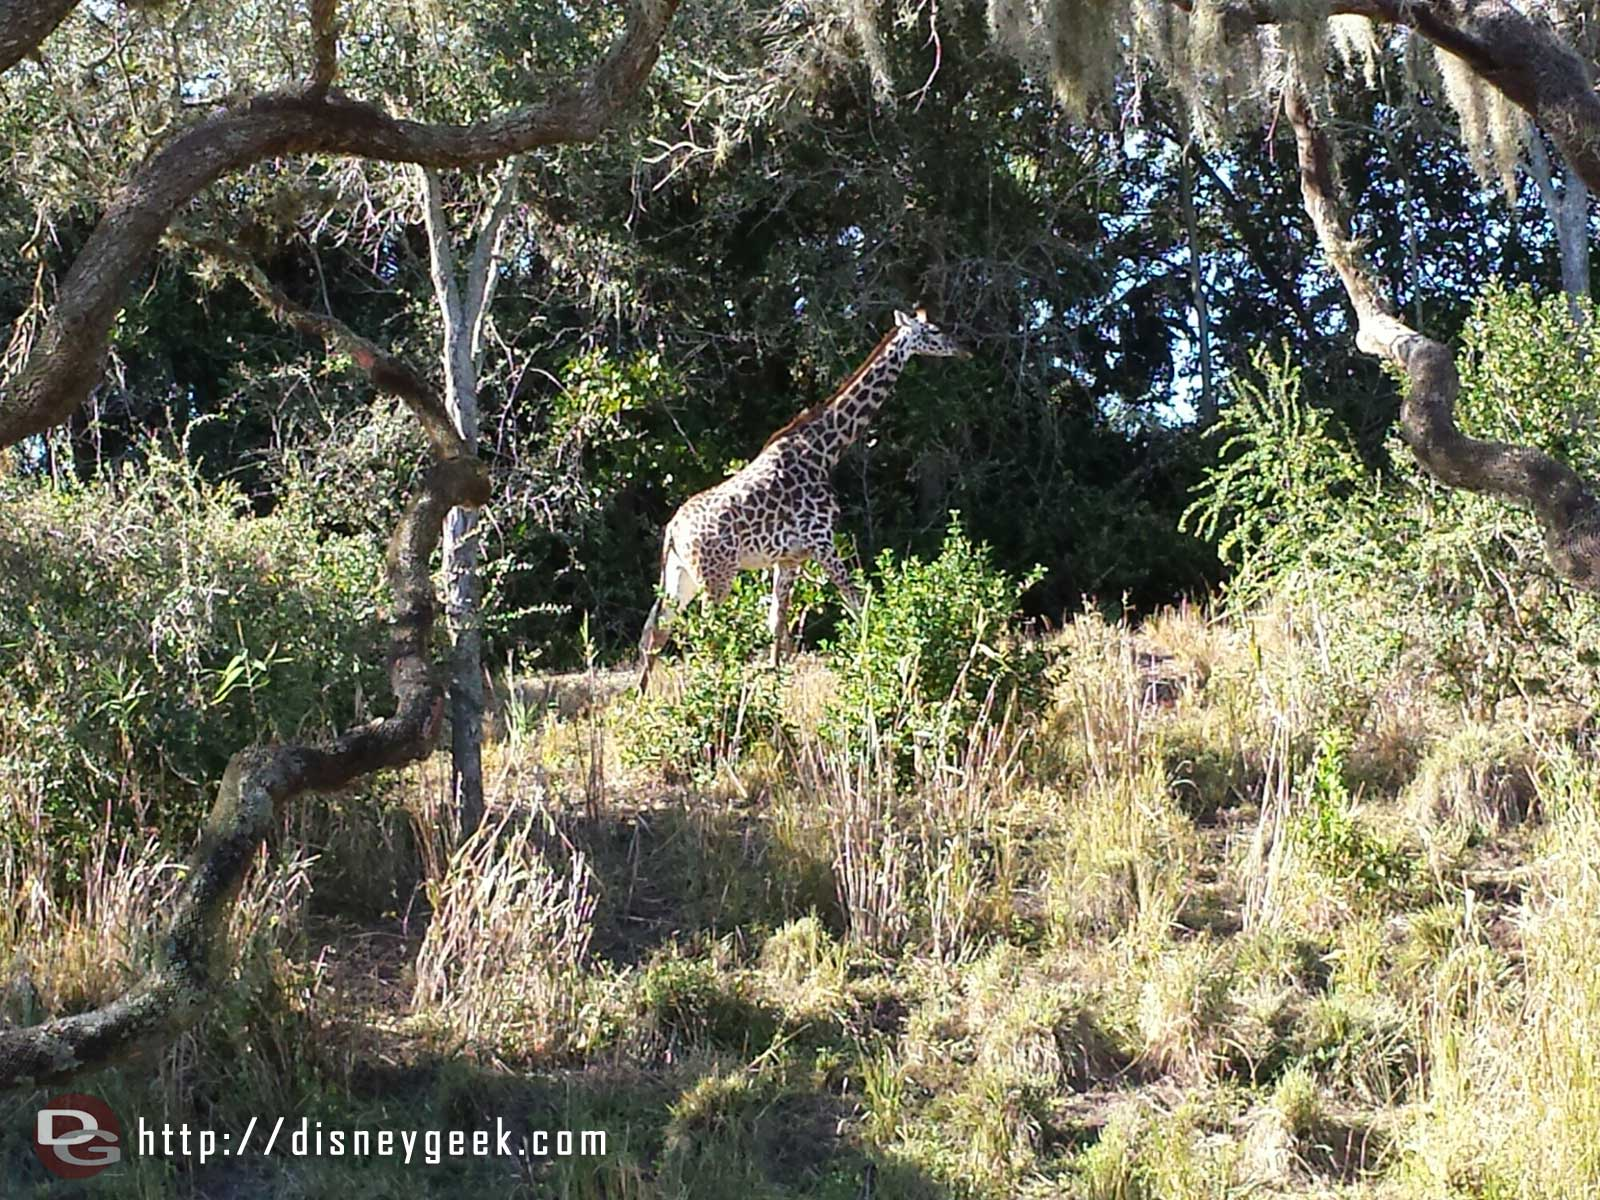 A giraffe on the savanna.